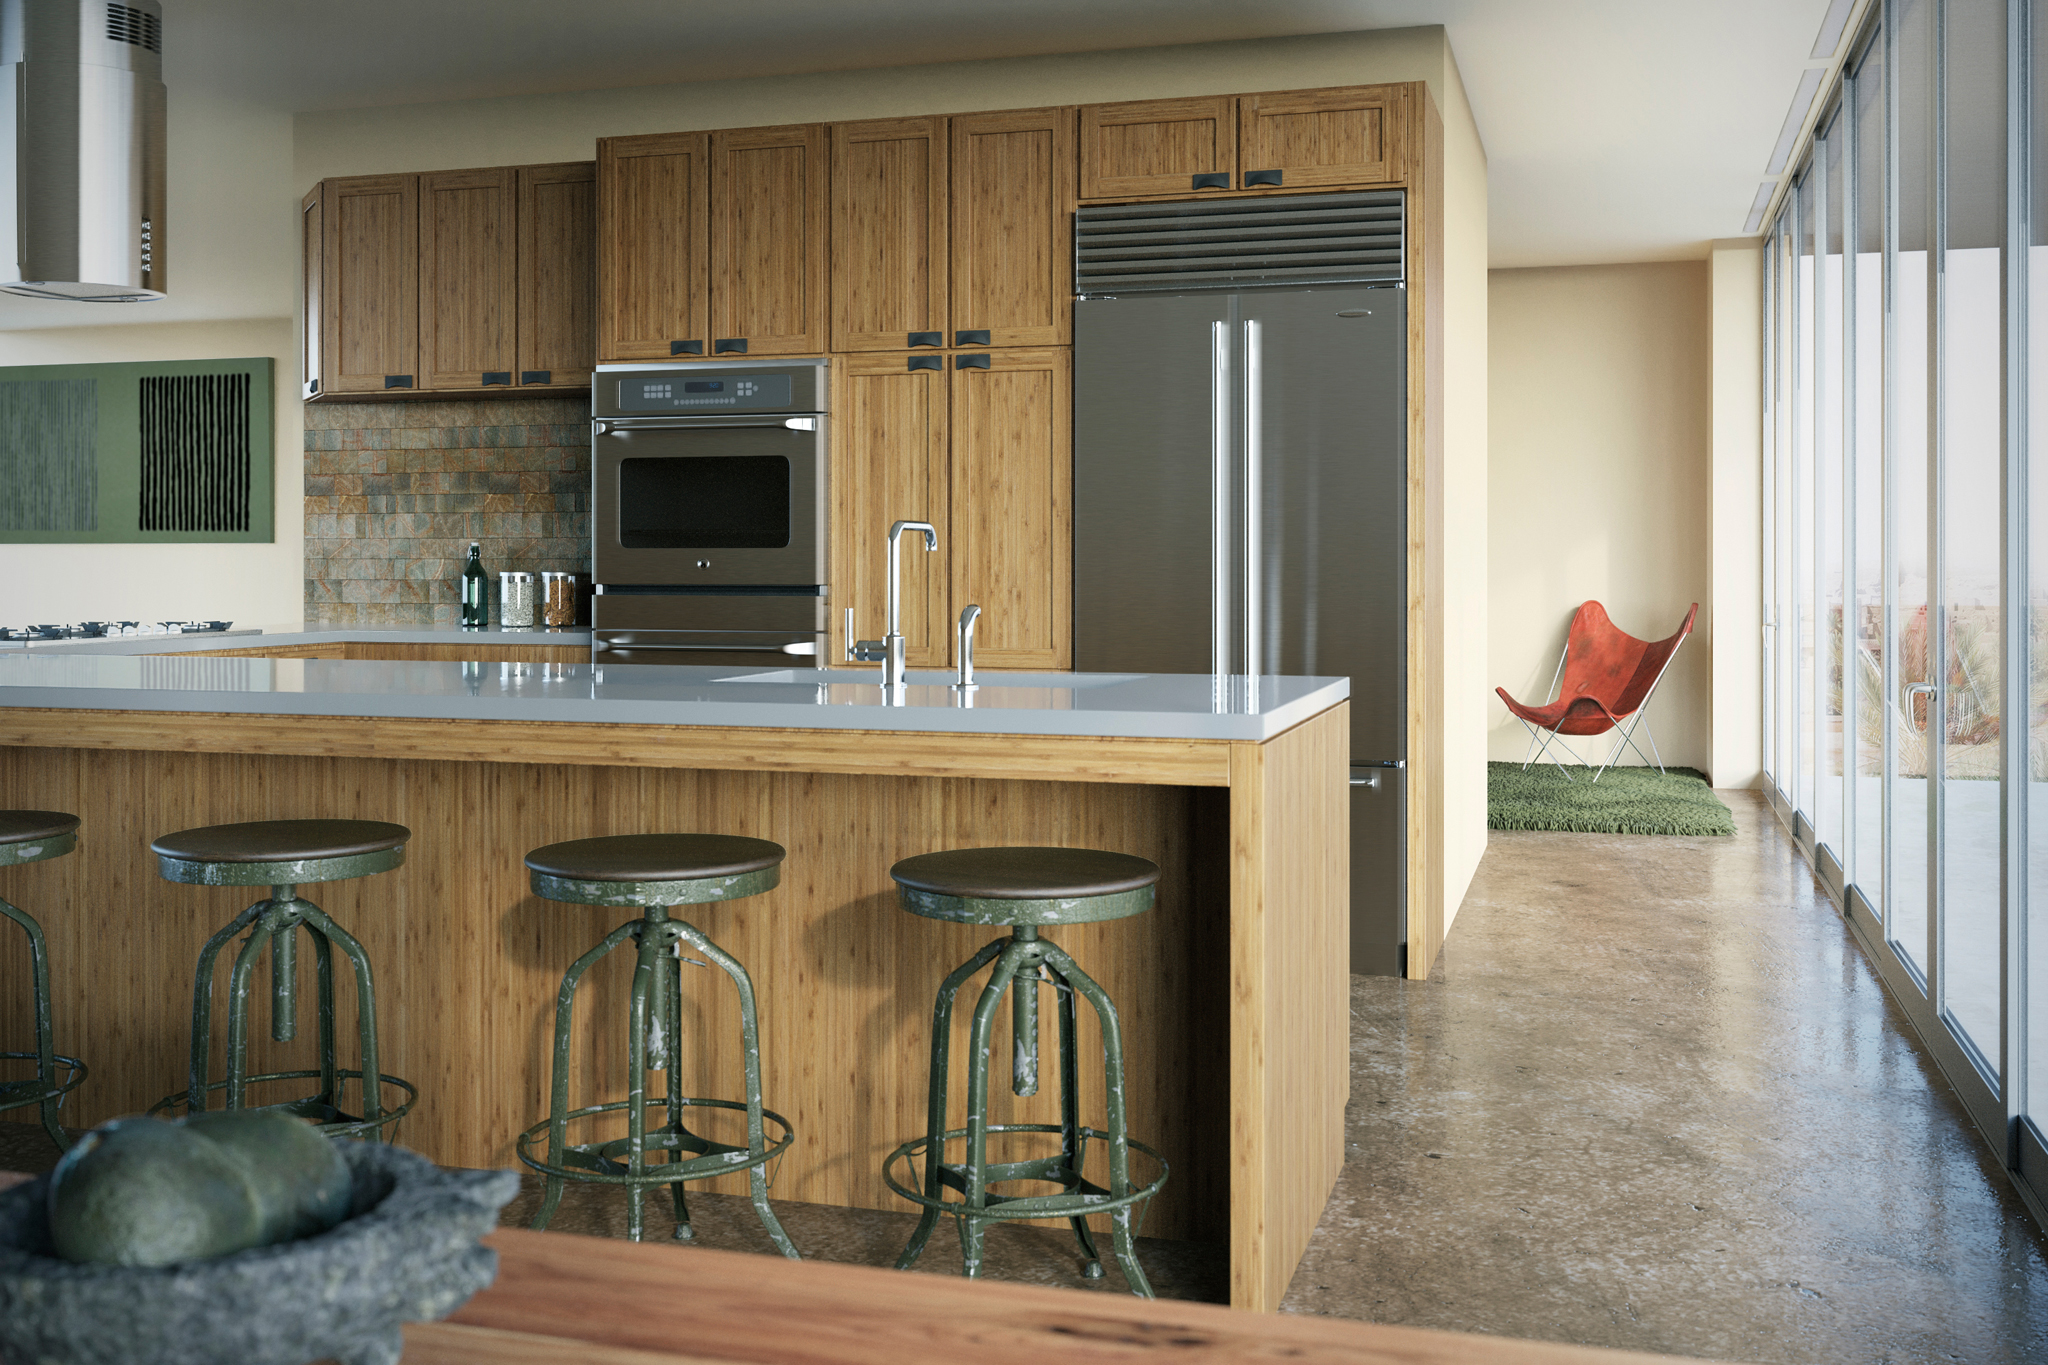 3d rendering of a kitchen with bamboo cabinetry